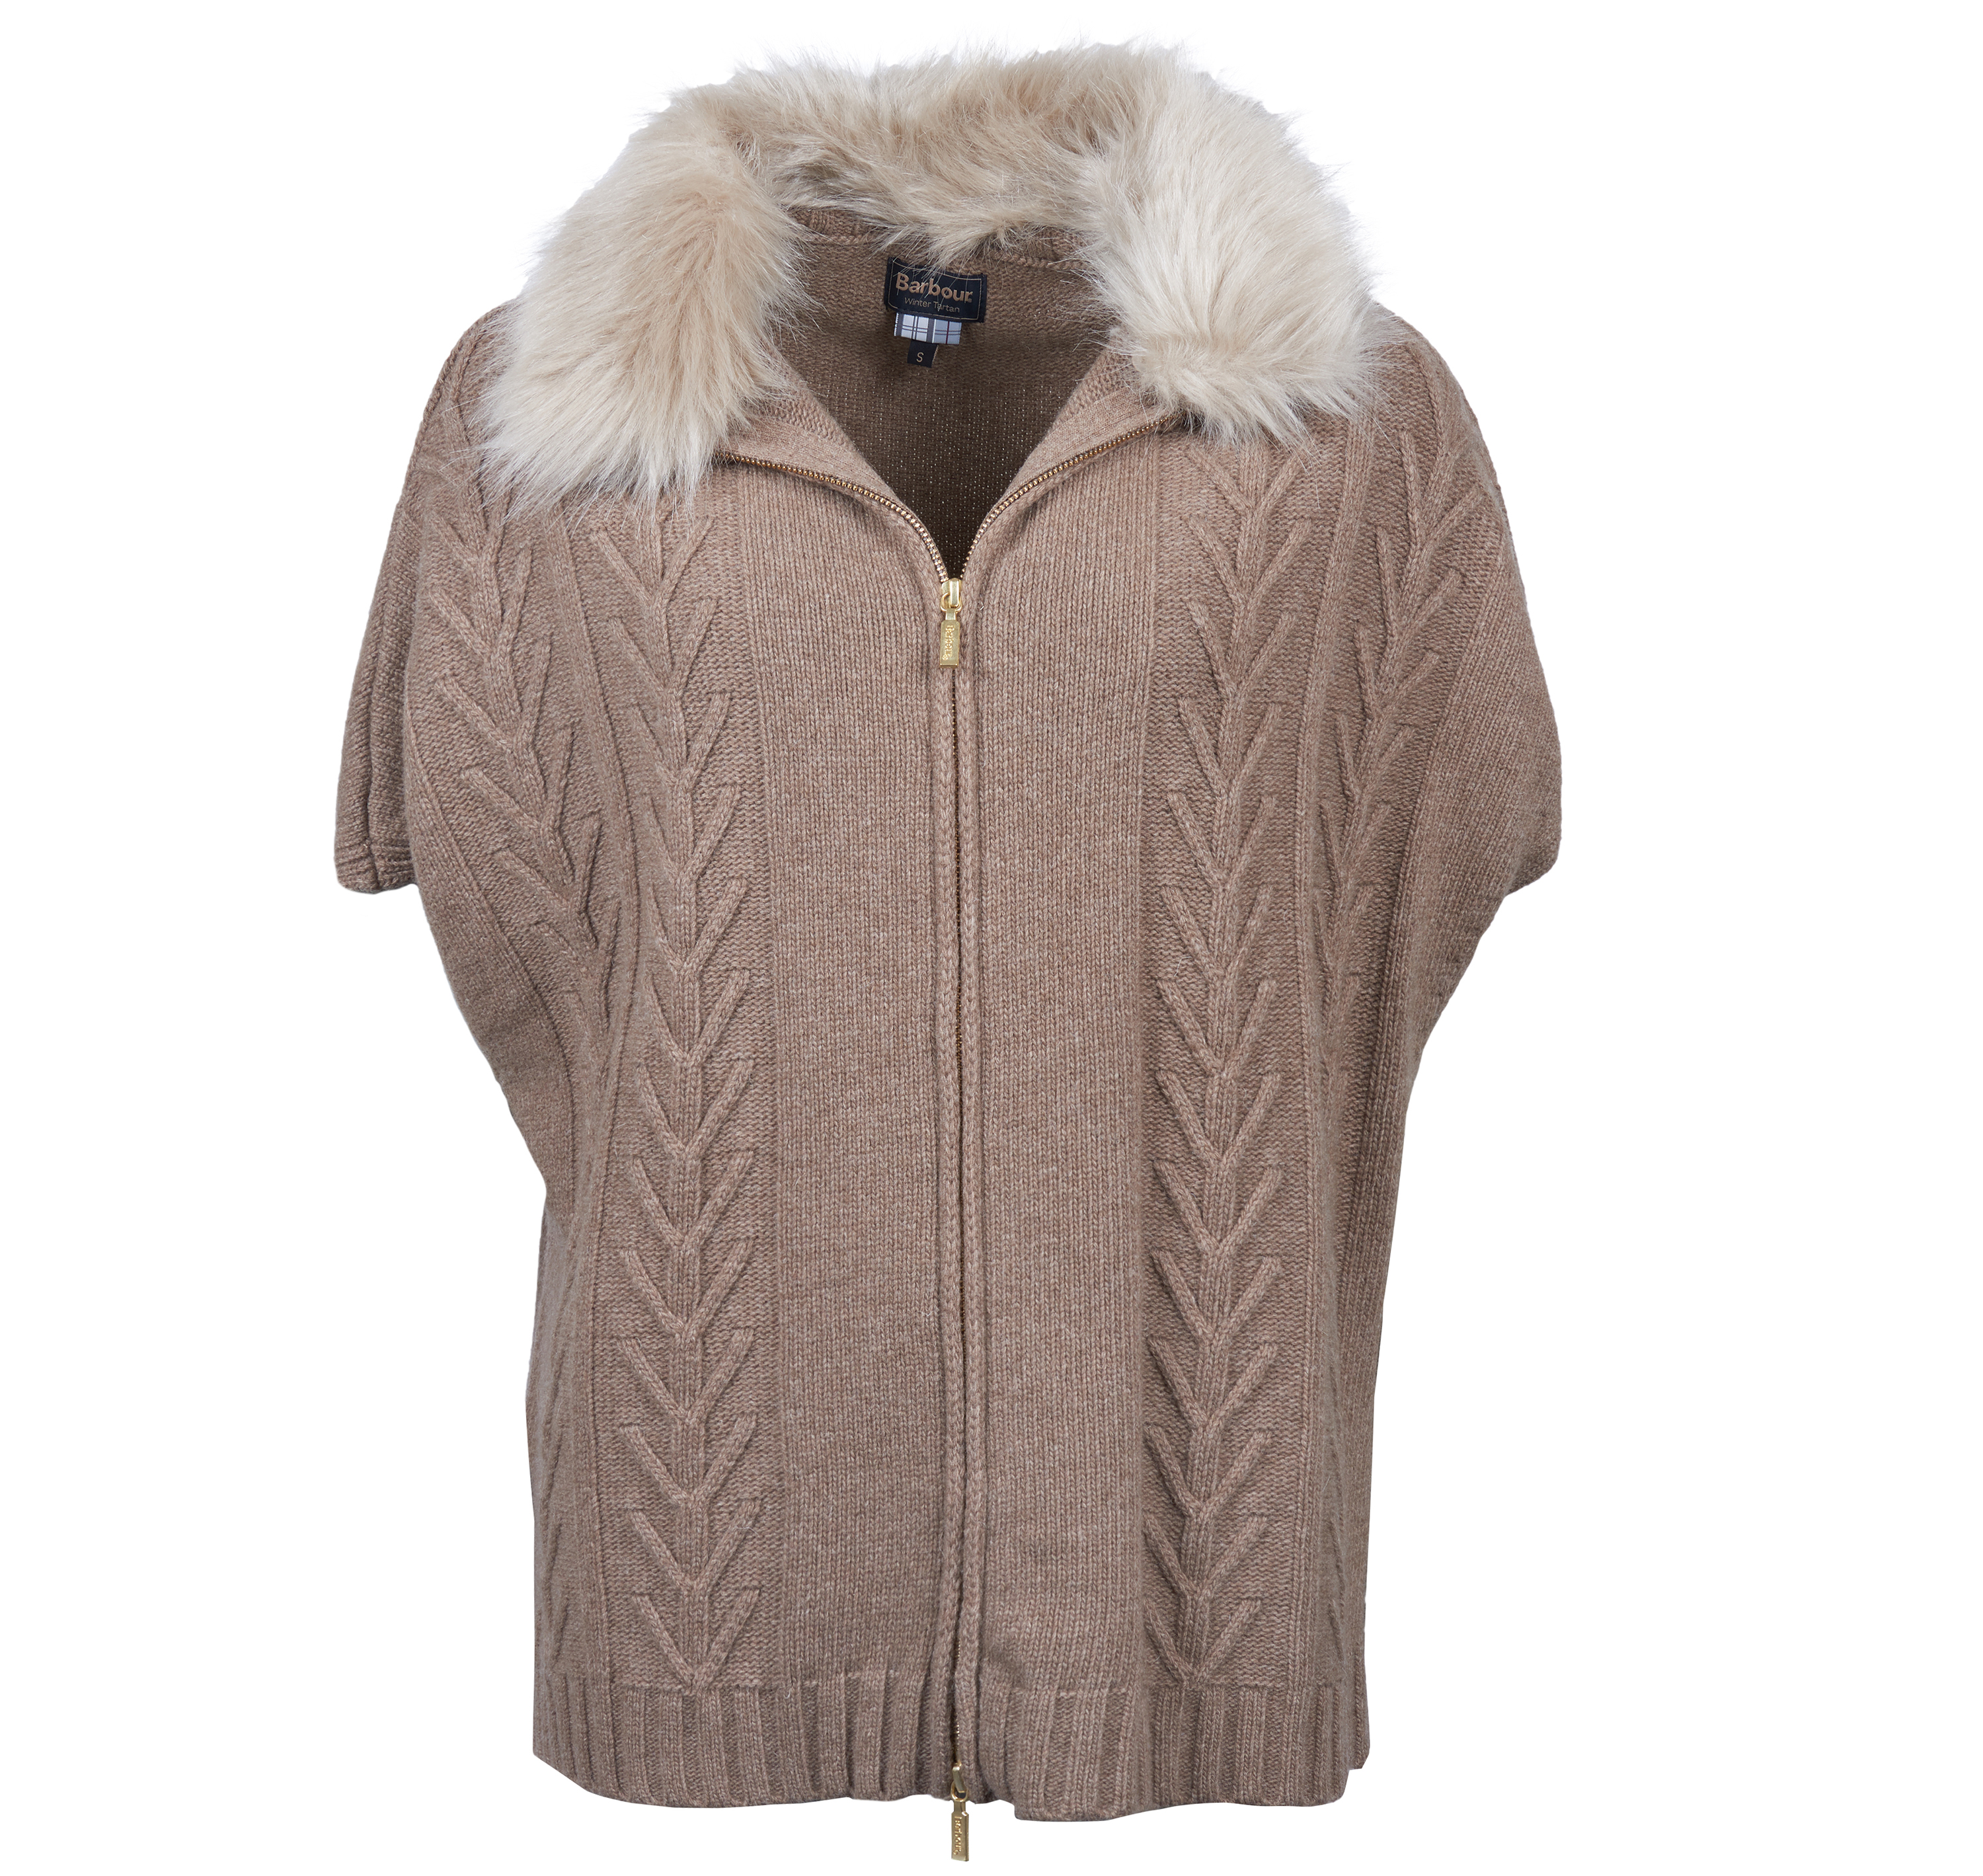 Barbour Beresford Knit Mink Marl Relaxed Fit